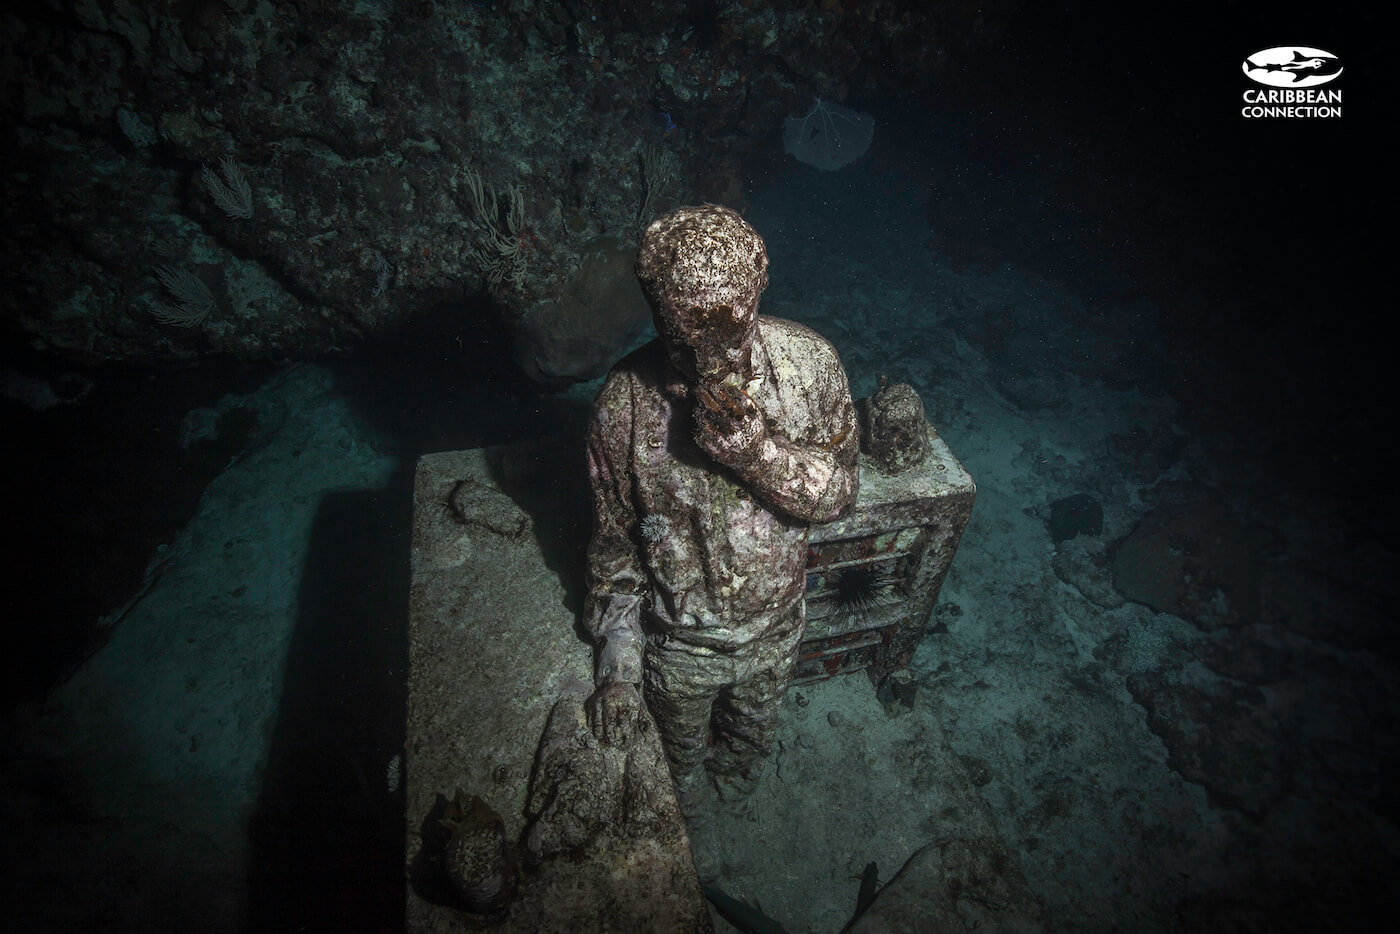 MUSA-Underwater-Museum-Cancun-Dive-Center-Caribbean-Connections-12